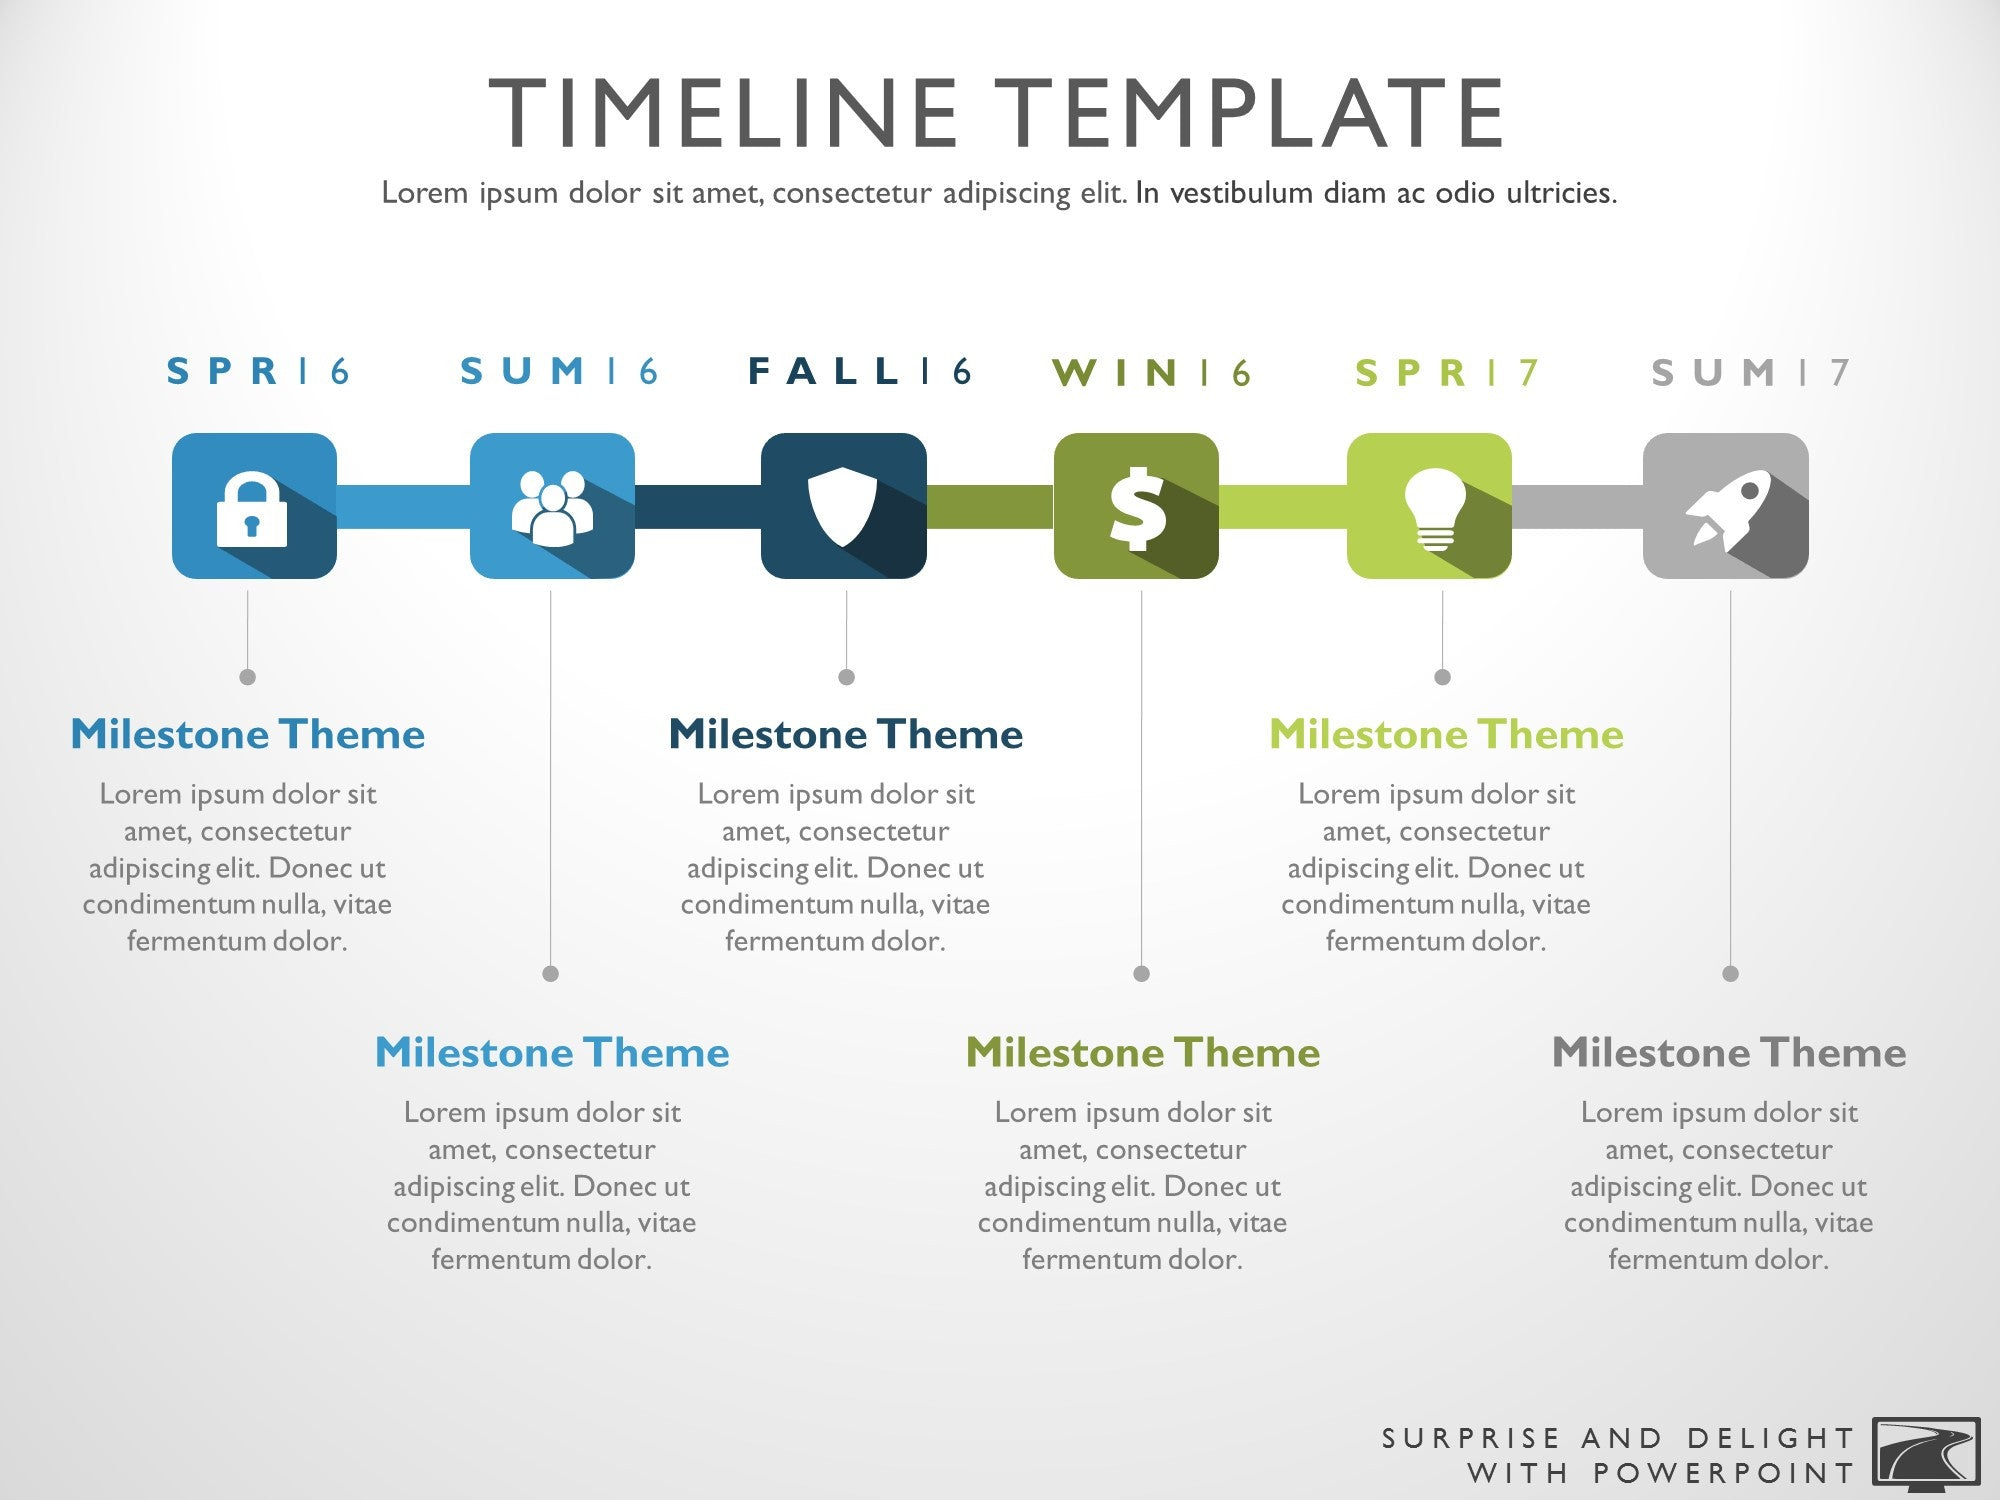 Horizontal Timeline Template from cdn.shopify.com